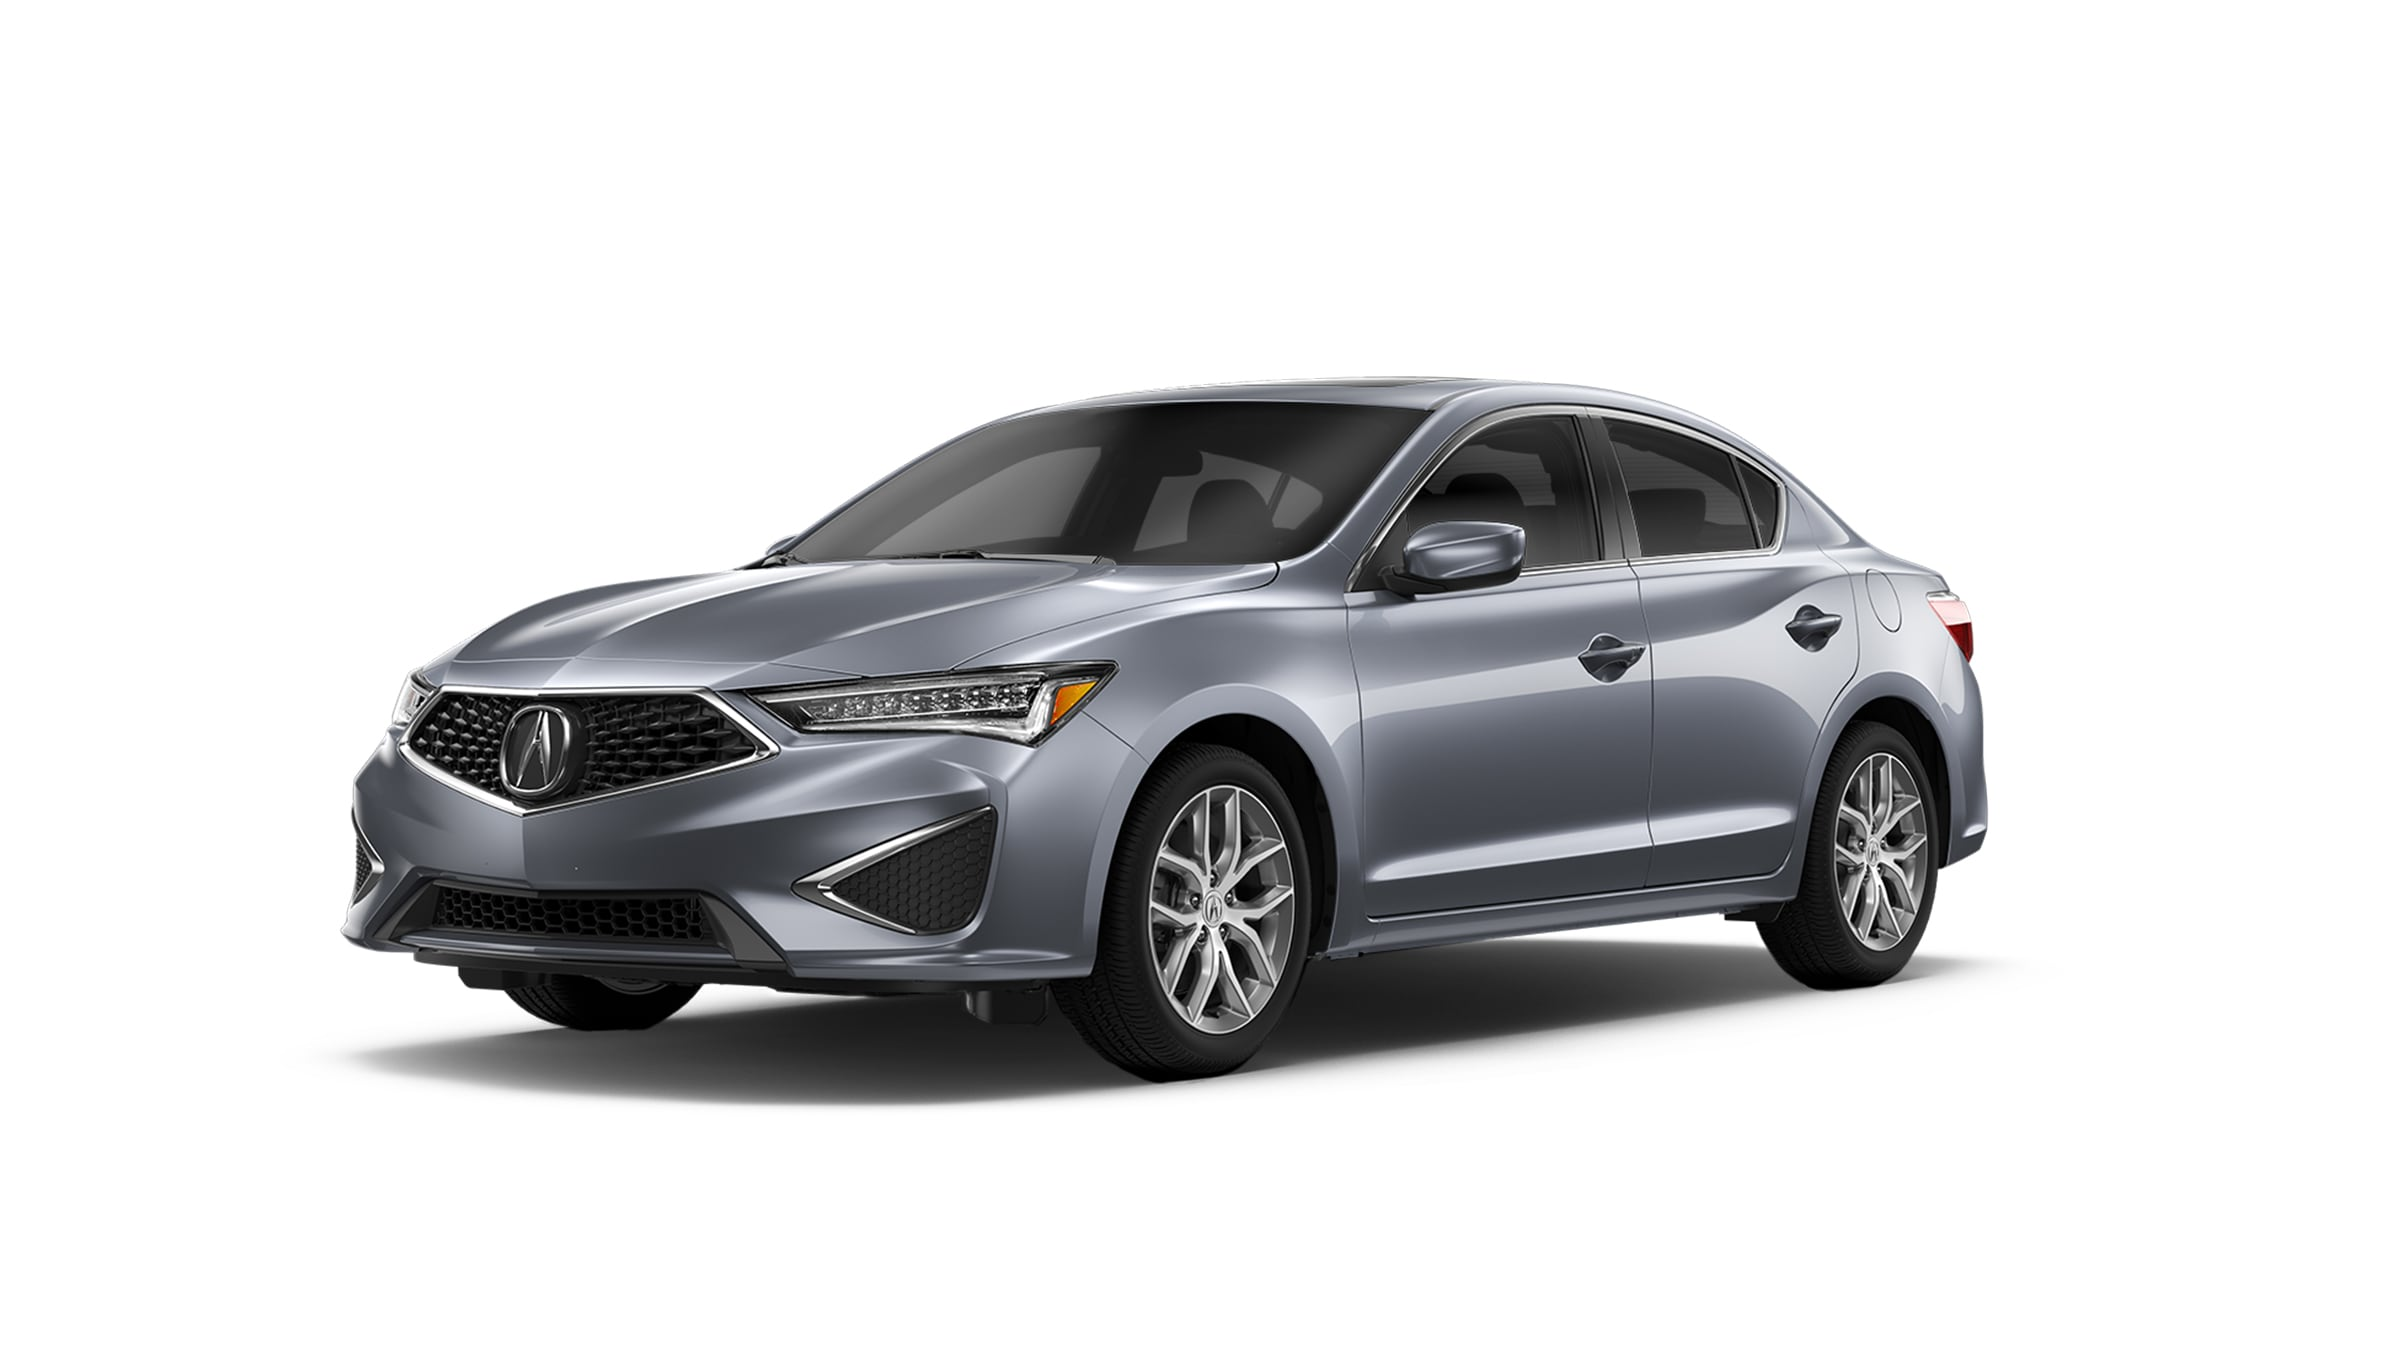 Current Car Offers Lease Deals Acuracom - Acura tl lease offers